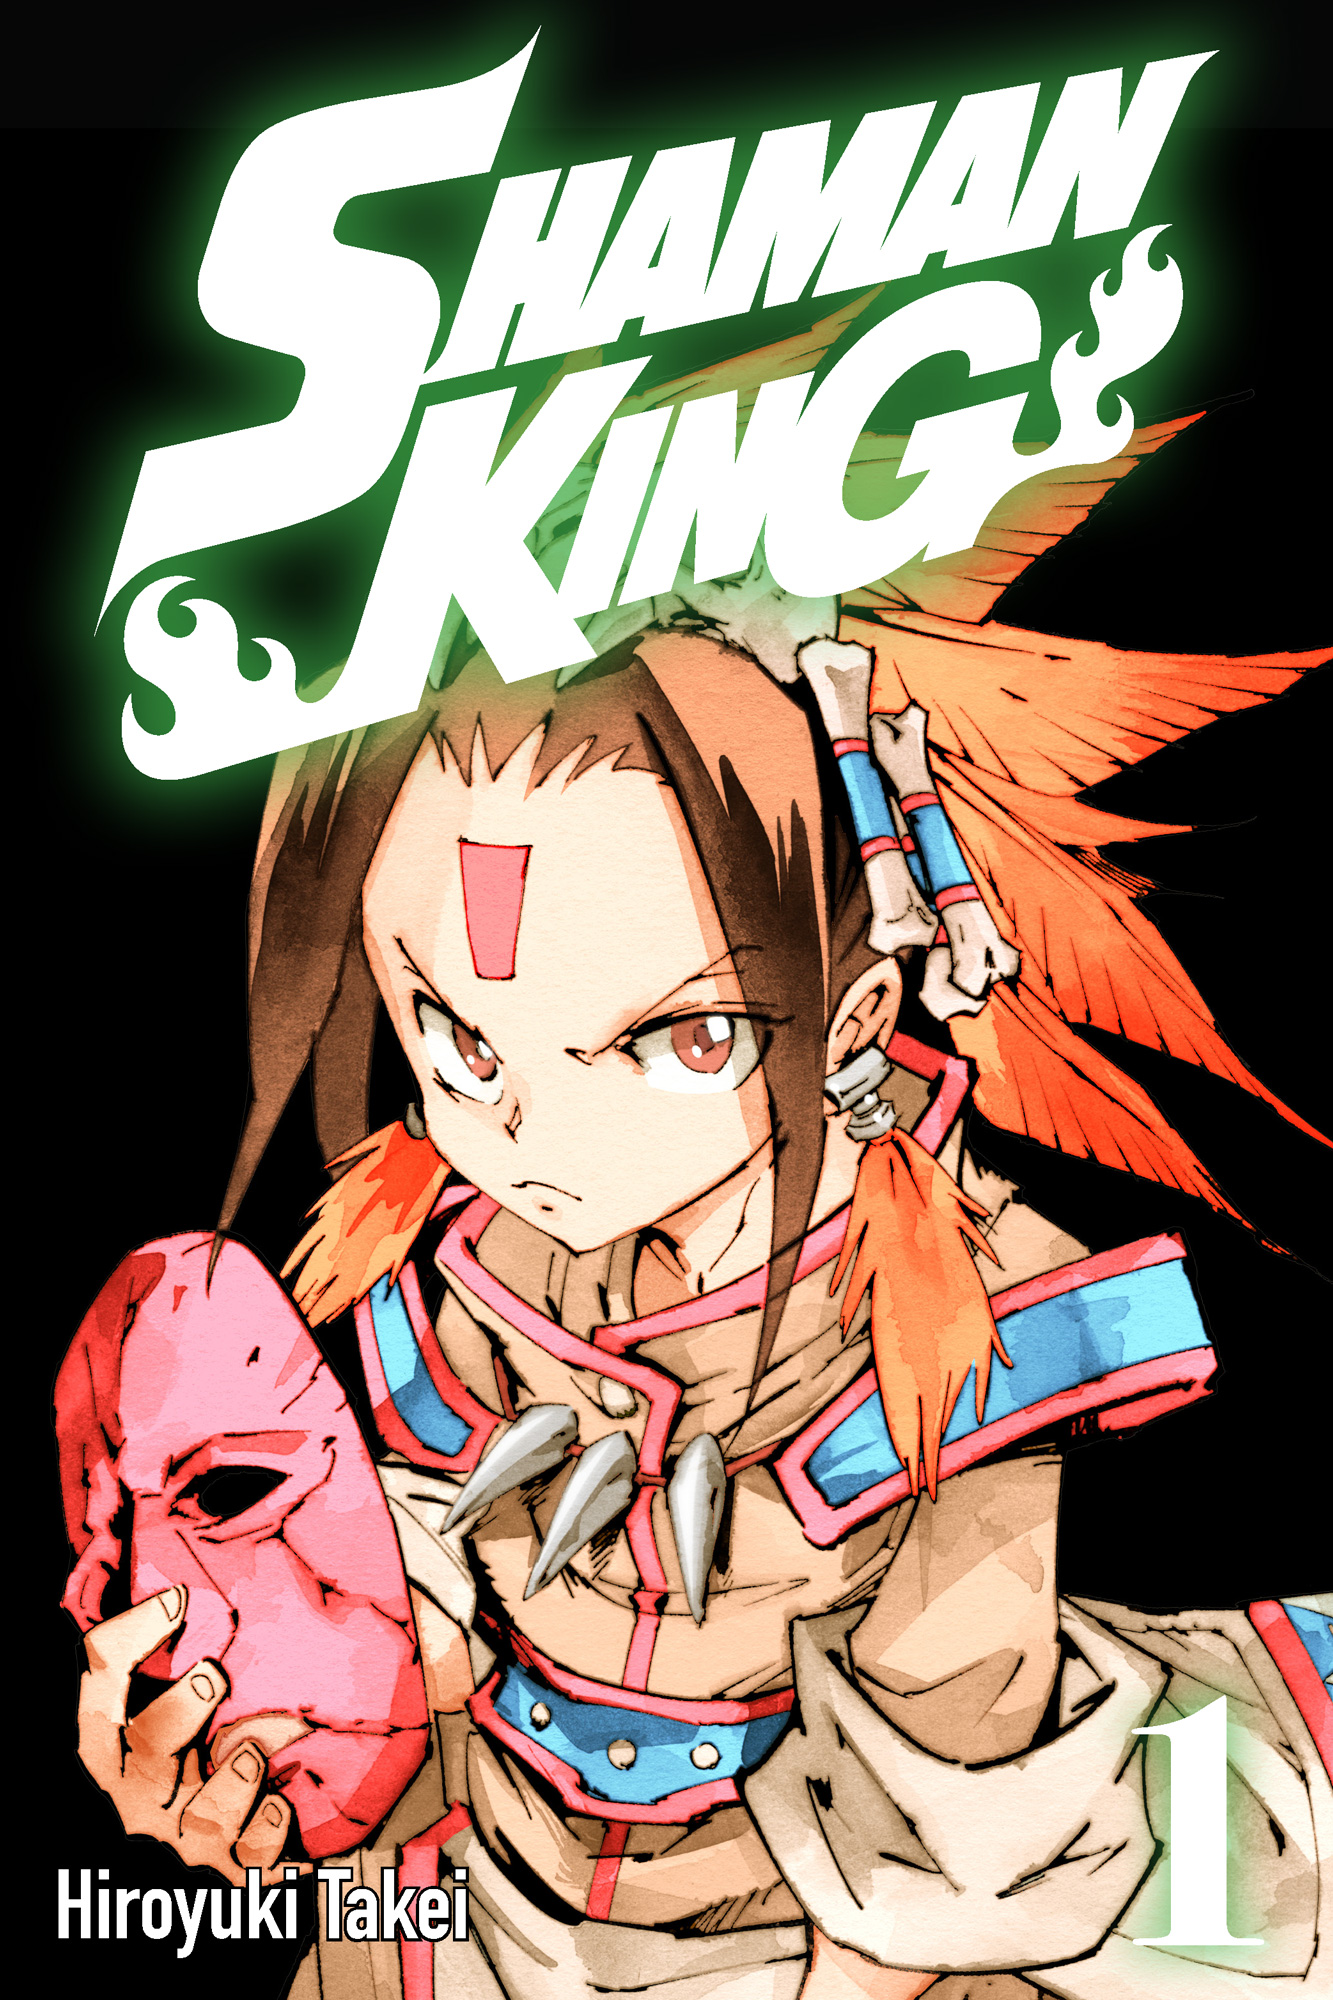 UPDATE] Shaman King returns completed in English for the first time! -  Kodansha Comics